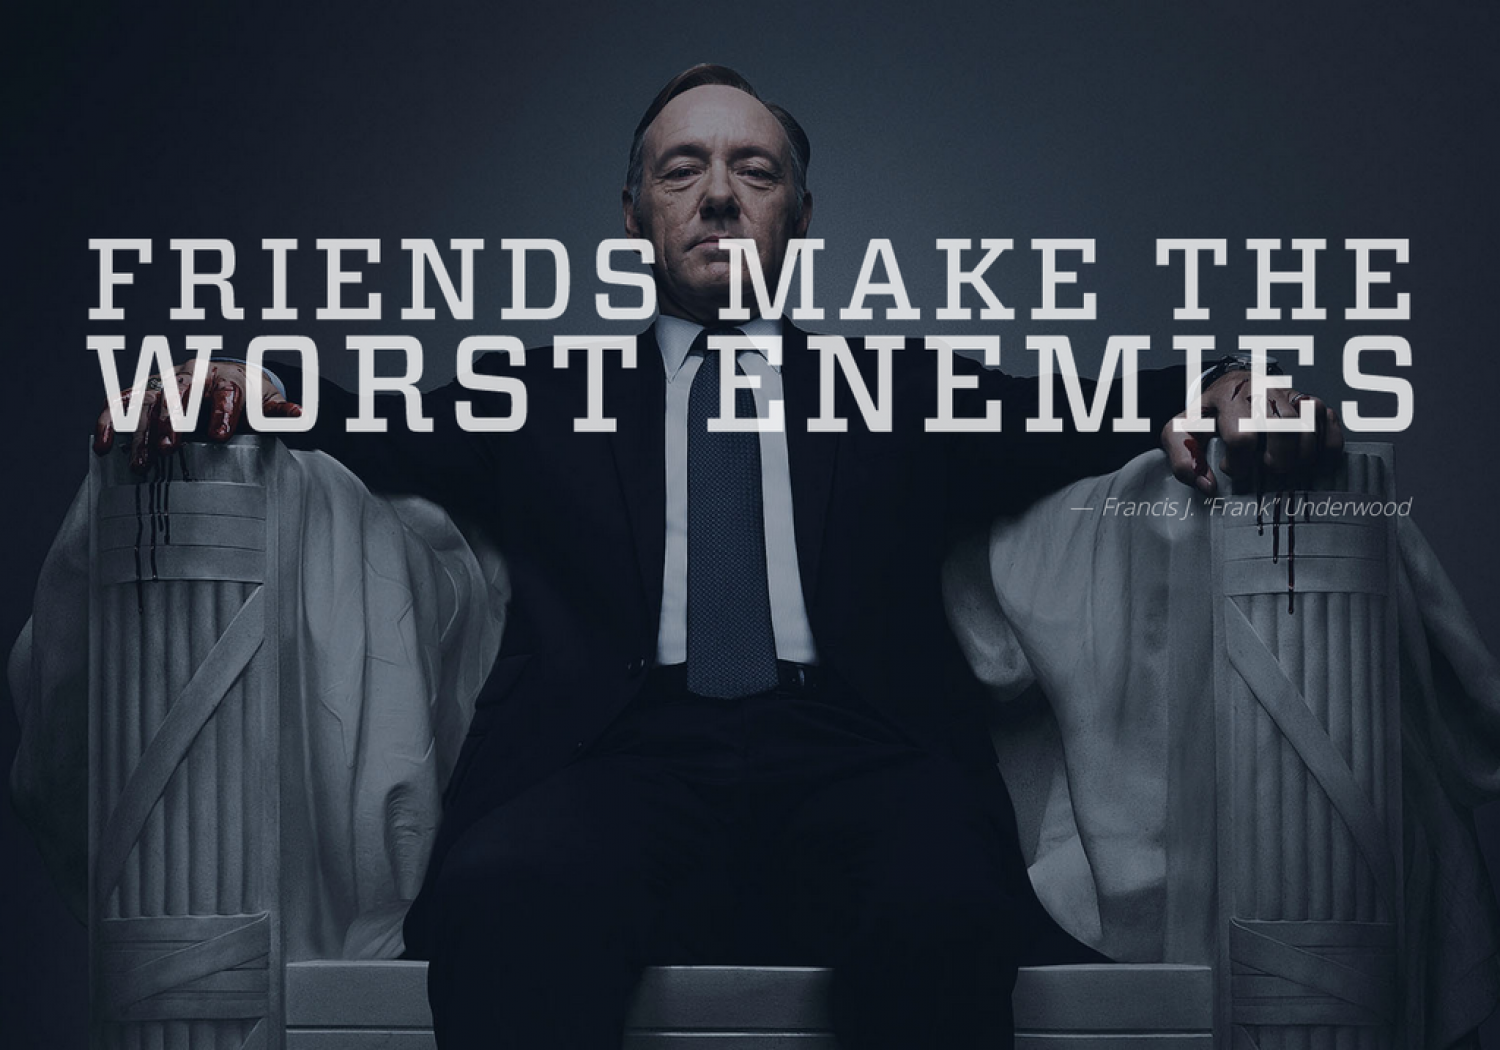 Friends make the worst enemies Infographic